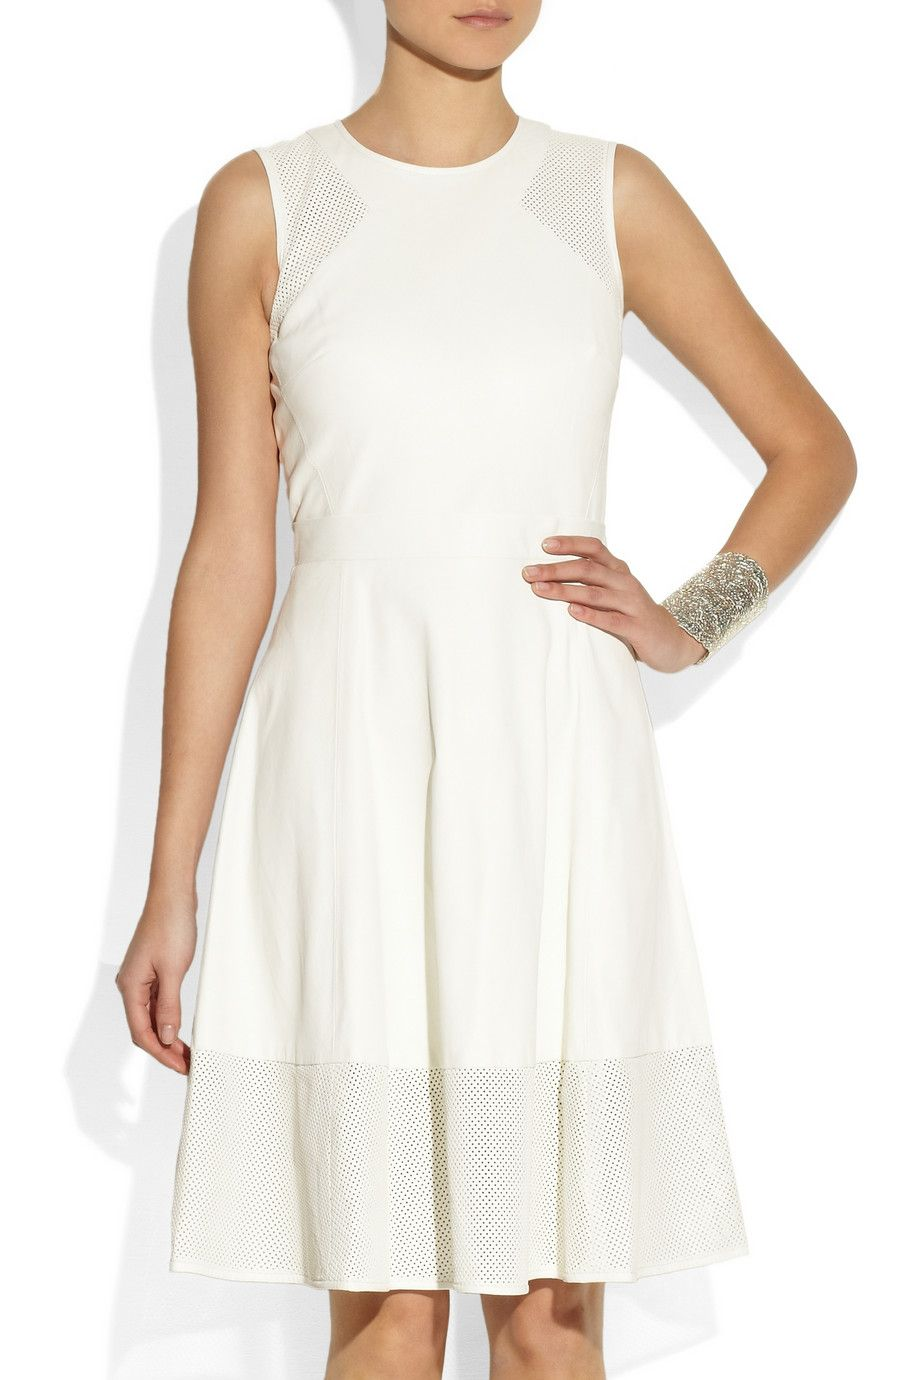 Off White Perforated Panel Leather Dress Dkny White Leather Dress Dresses Leather Dress [ 1380 x 920 Pixel ]